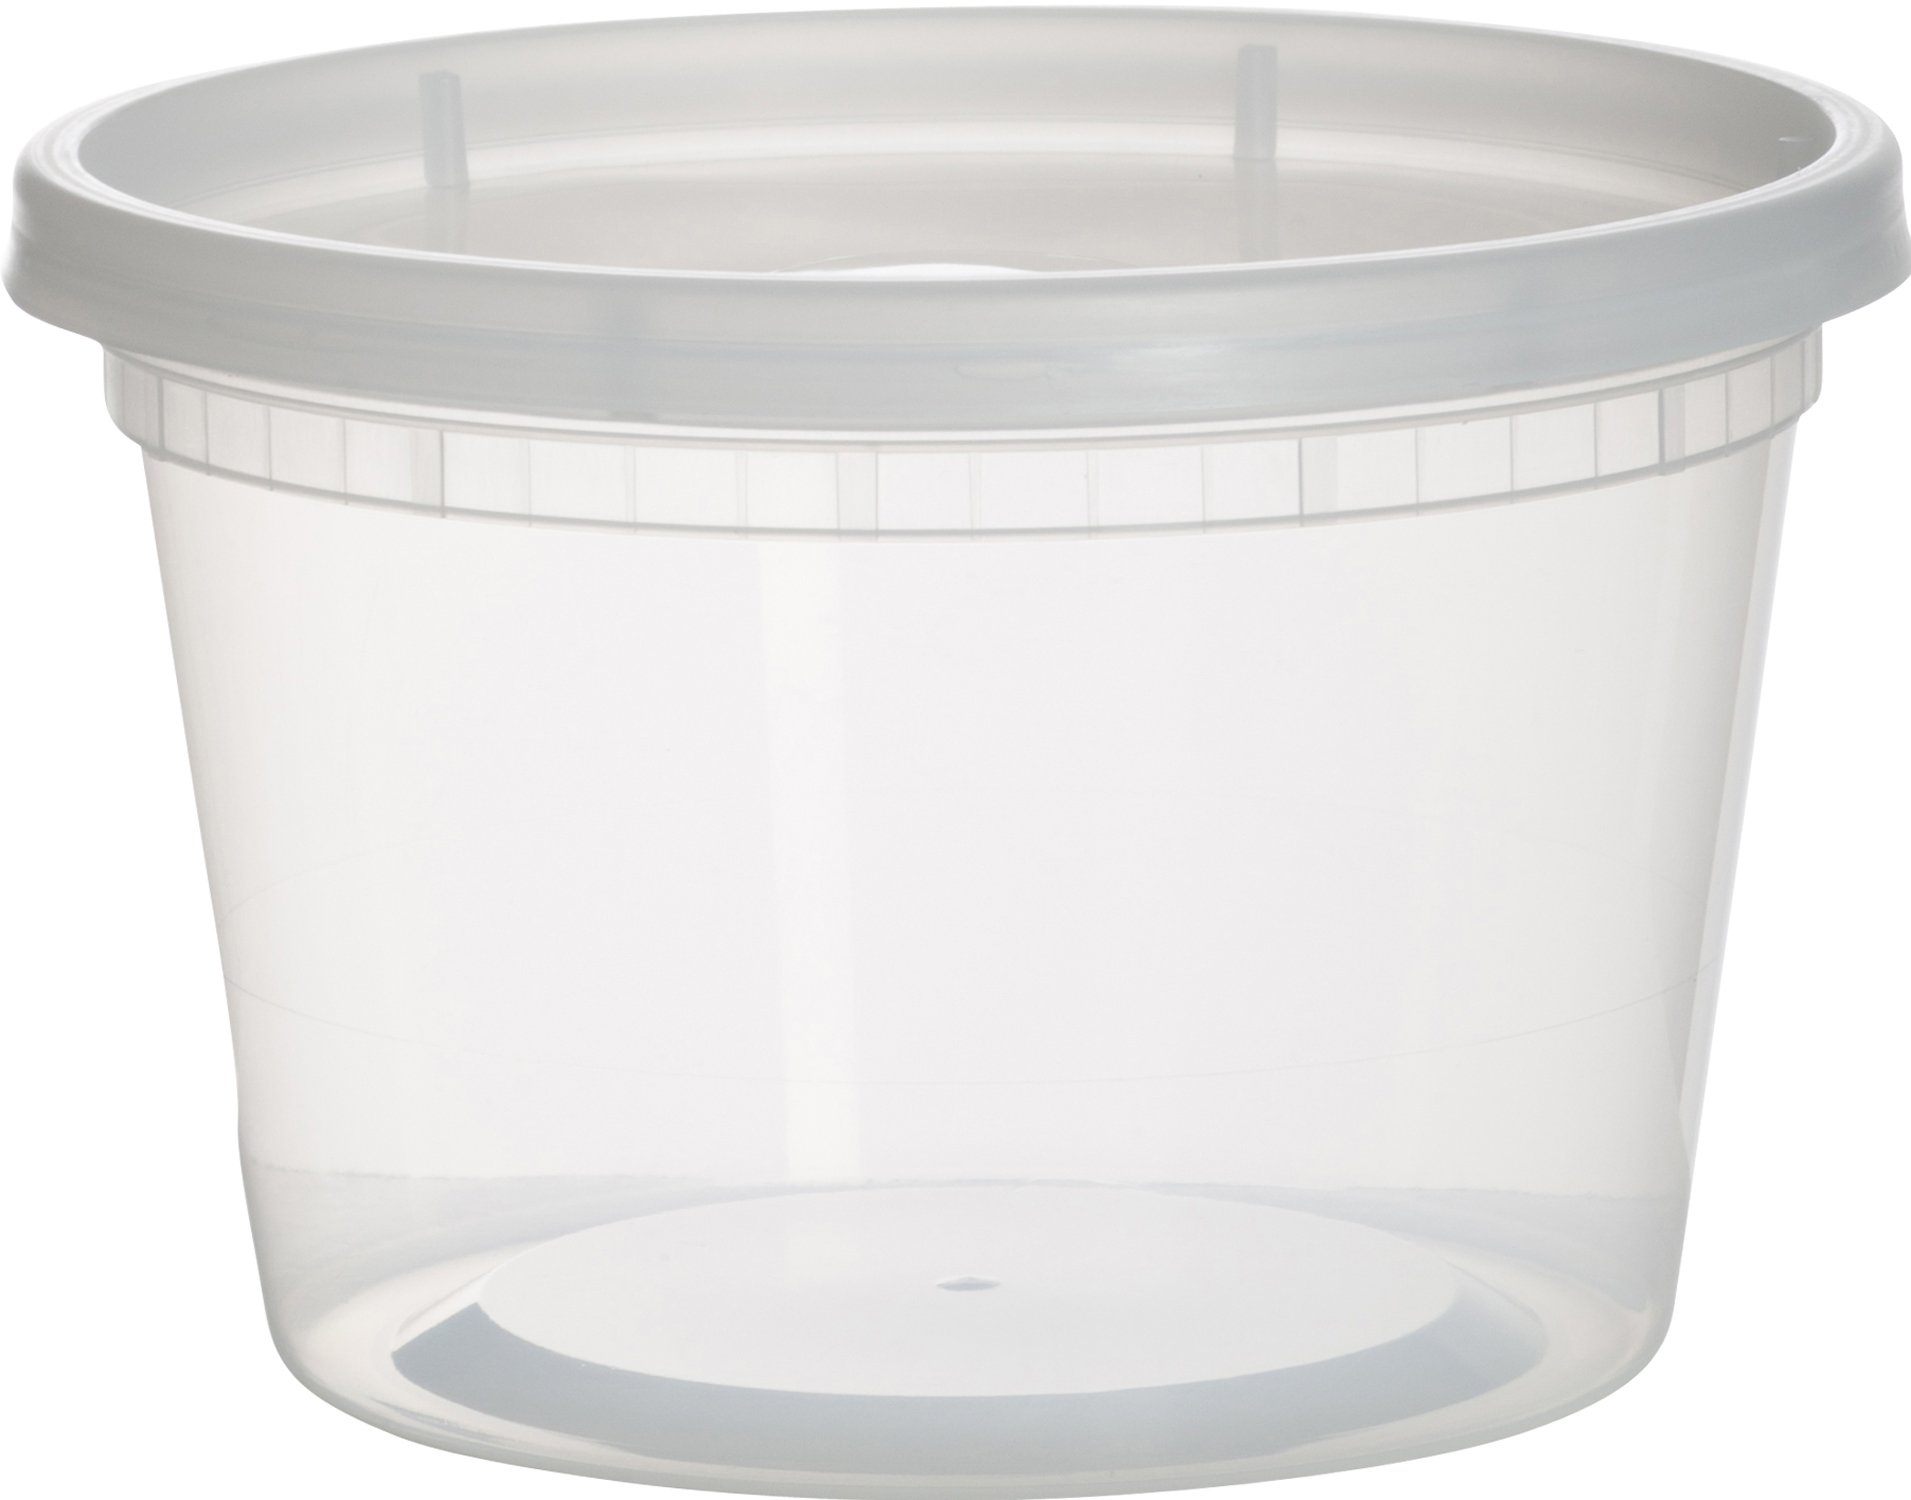 Paksh Novelty Plastic Containers for Lunch/Medium Food Containers with Lids, Leak Proof, Microwavable, Freezer And Dishwasher Safe, 16 Ounce, 36 Pack